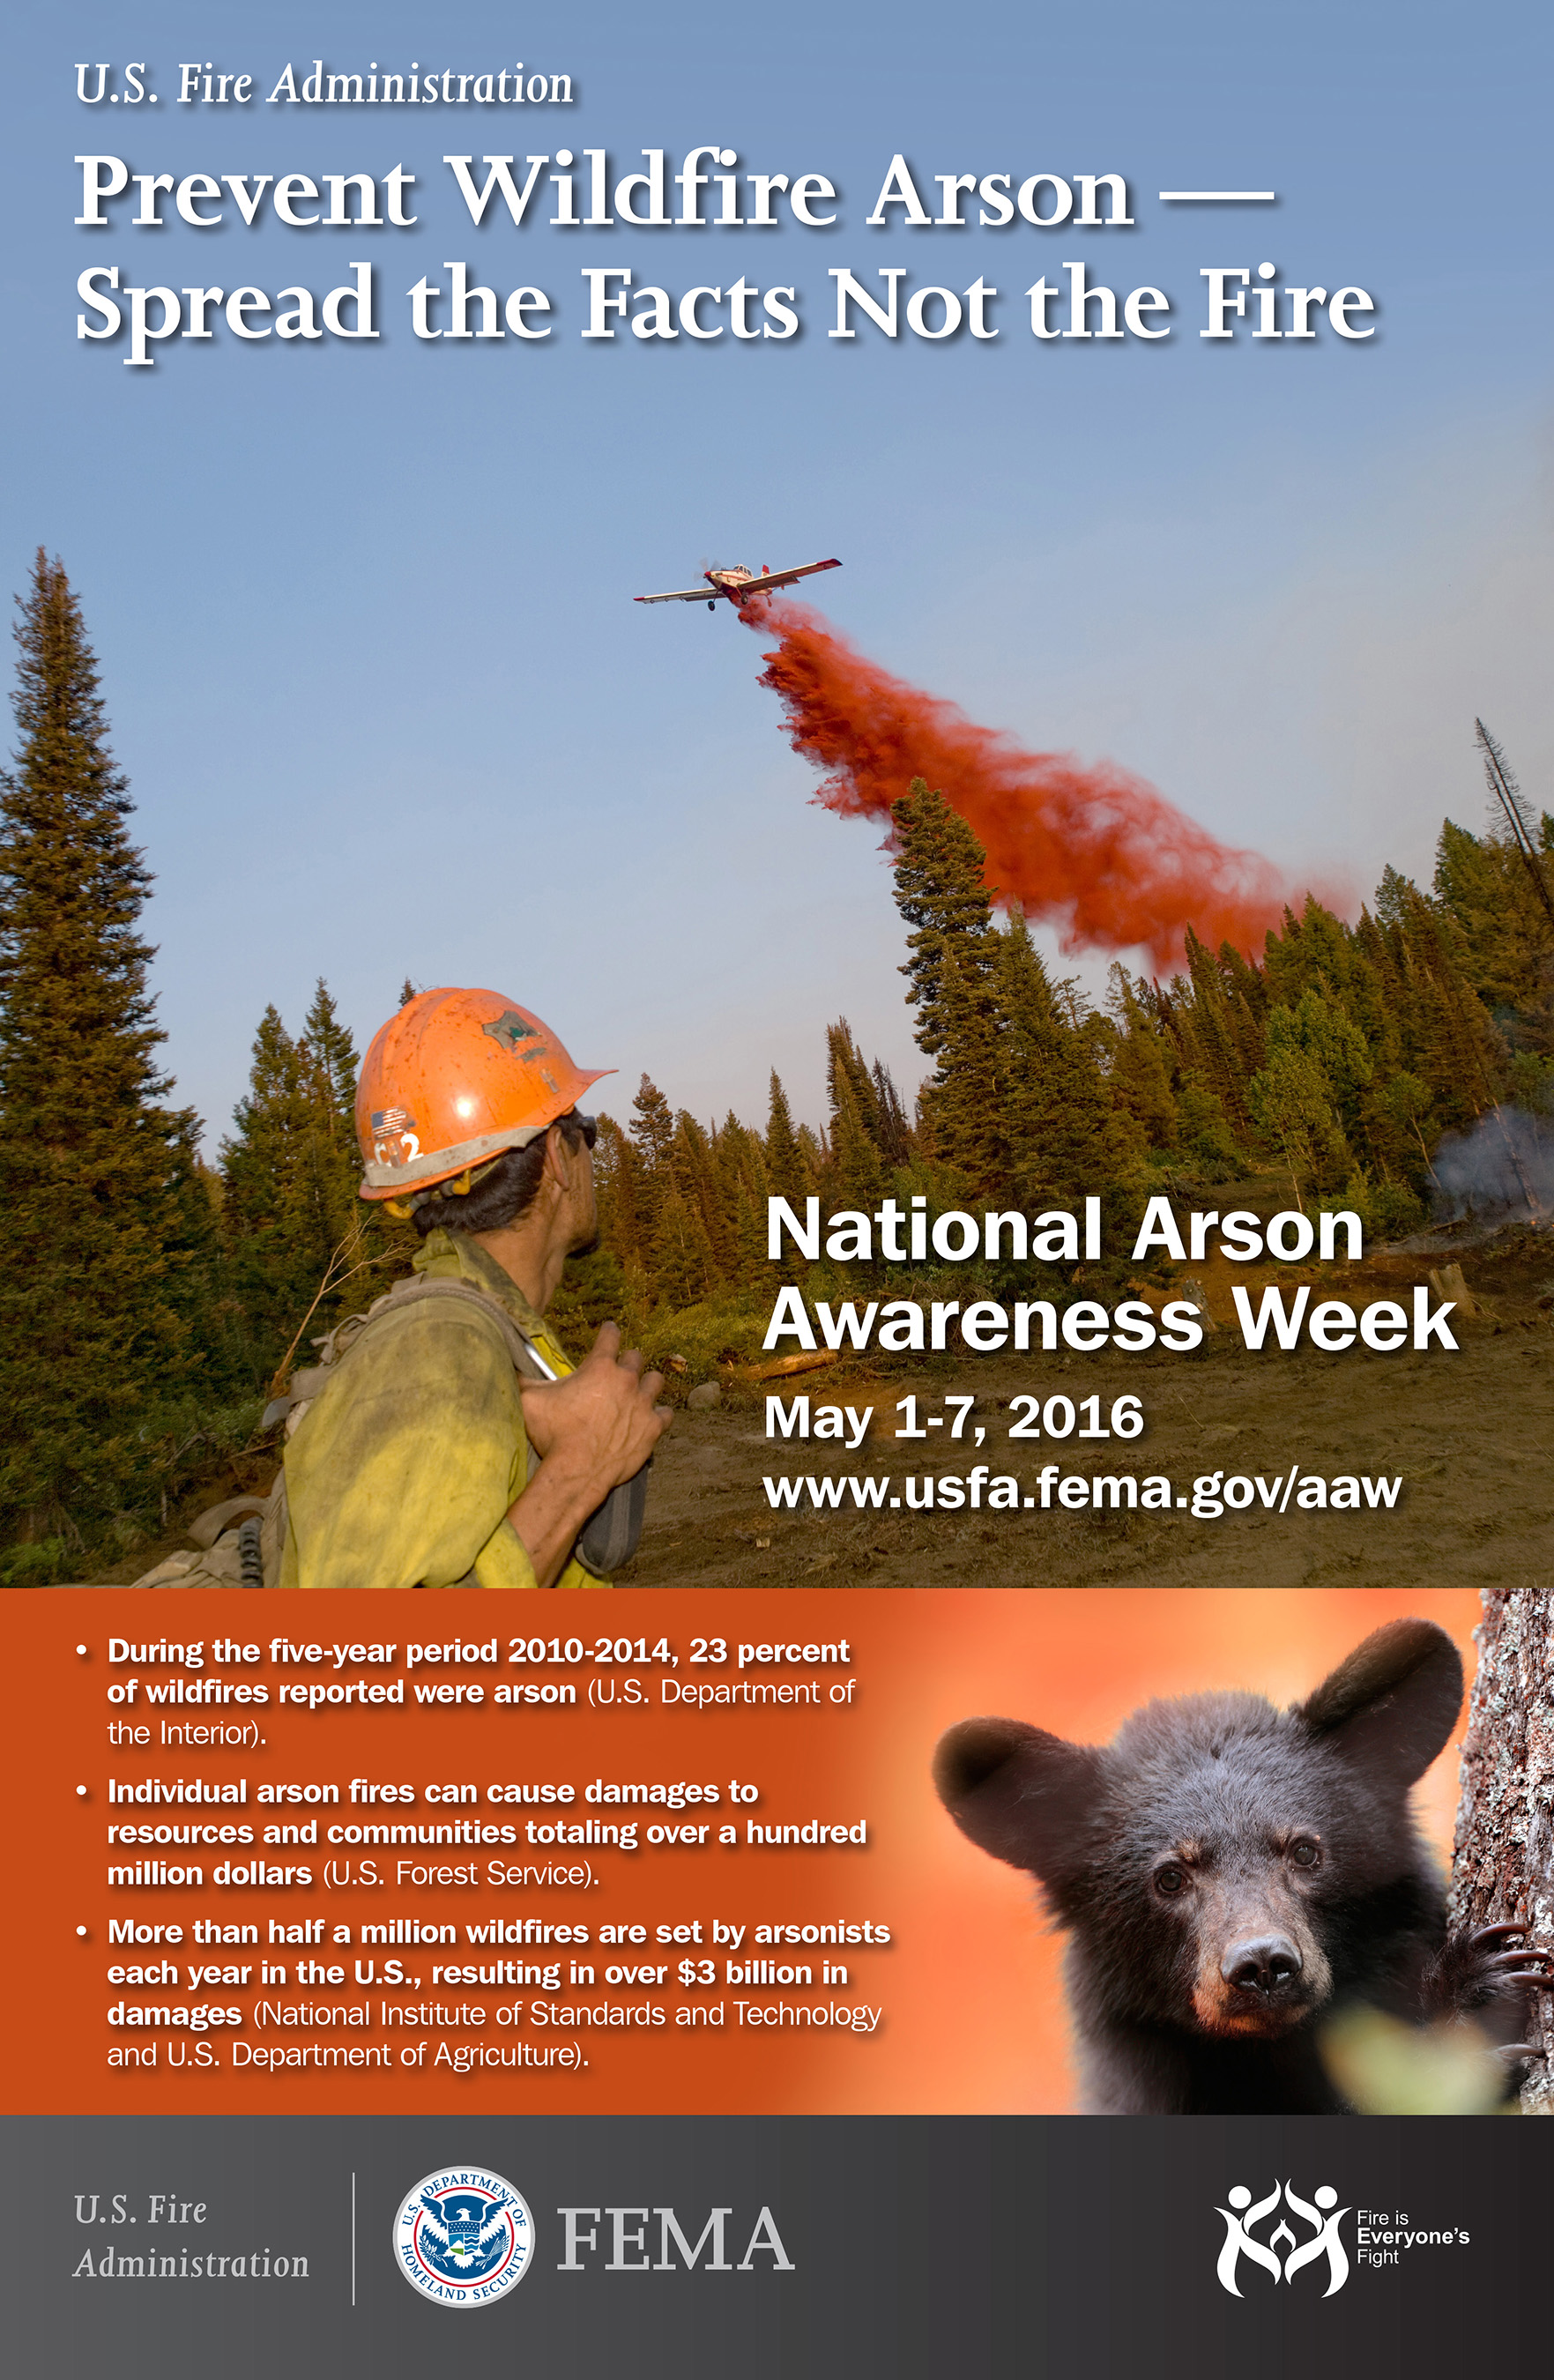 2016 Arson Awareness Week - Fighting Wildfires with Awareness, Education, and Dogs